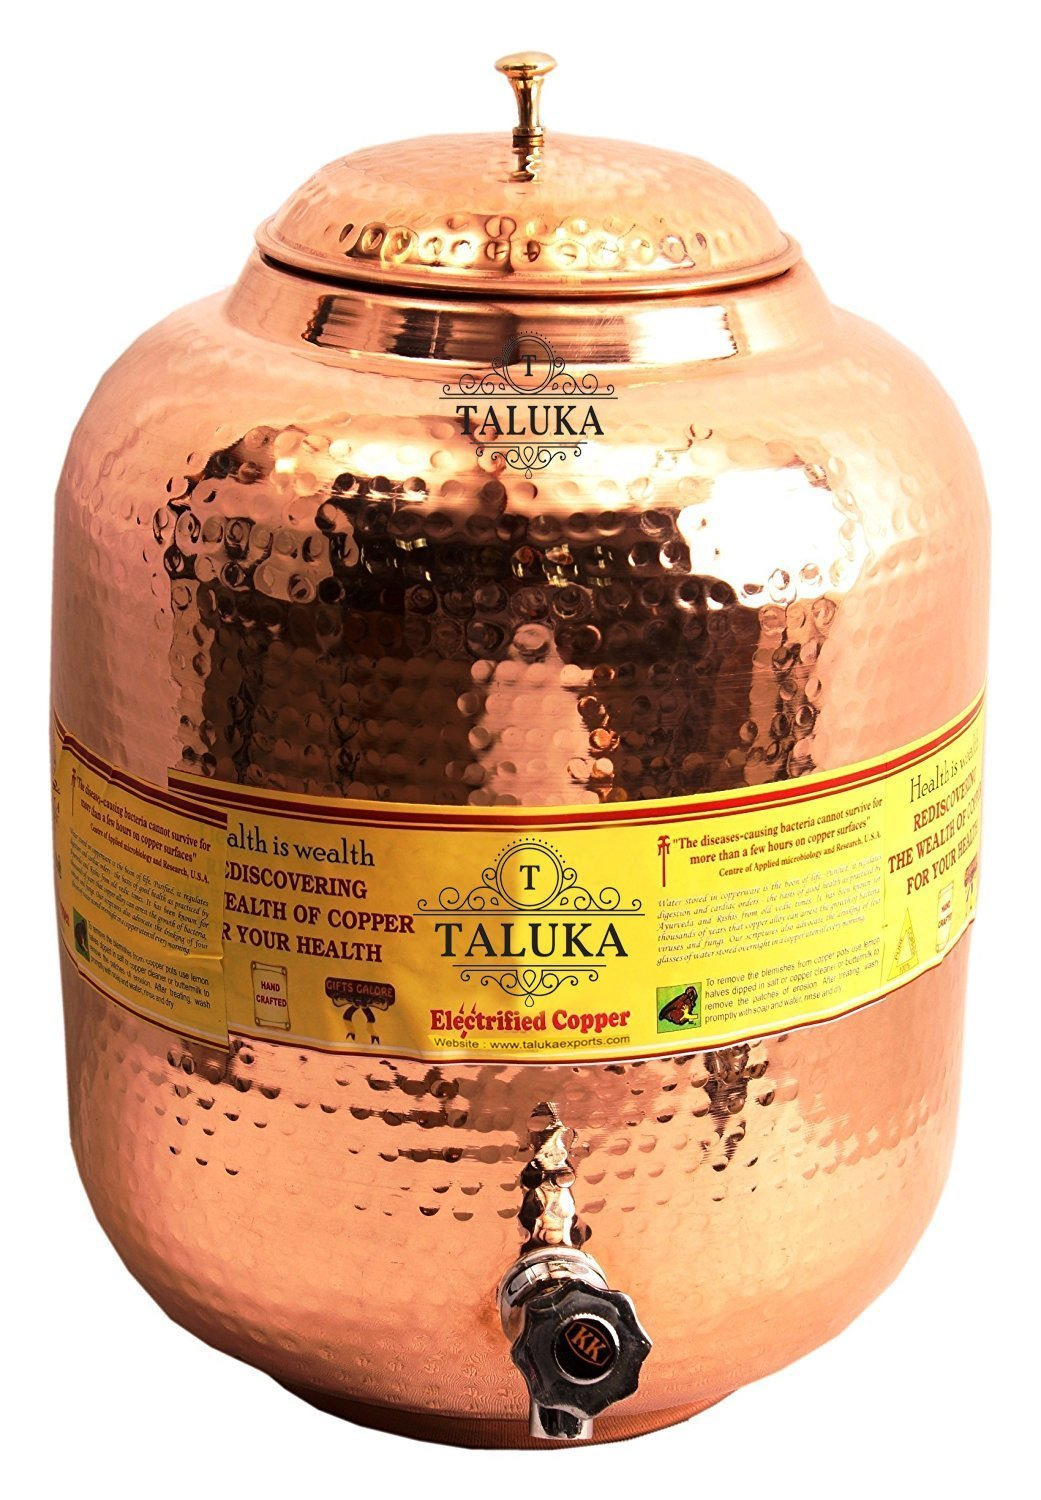 Taluka 13.5 X 5.7''Inches Handmade Hammered Pure Copper Water Pot Tank with Tap   338.1 Oz Capcity   For water storage in Home Garden Good Health Benefits Yoga